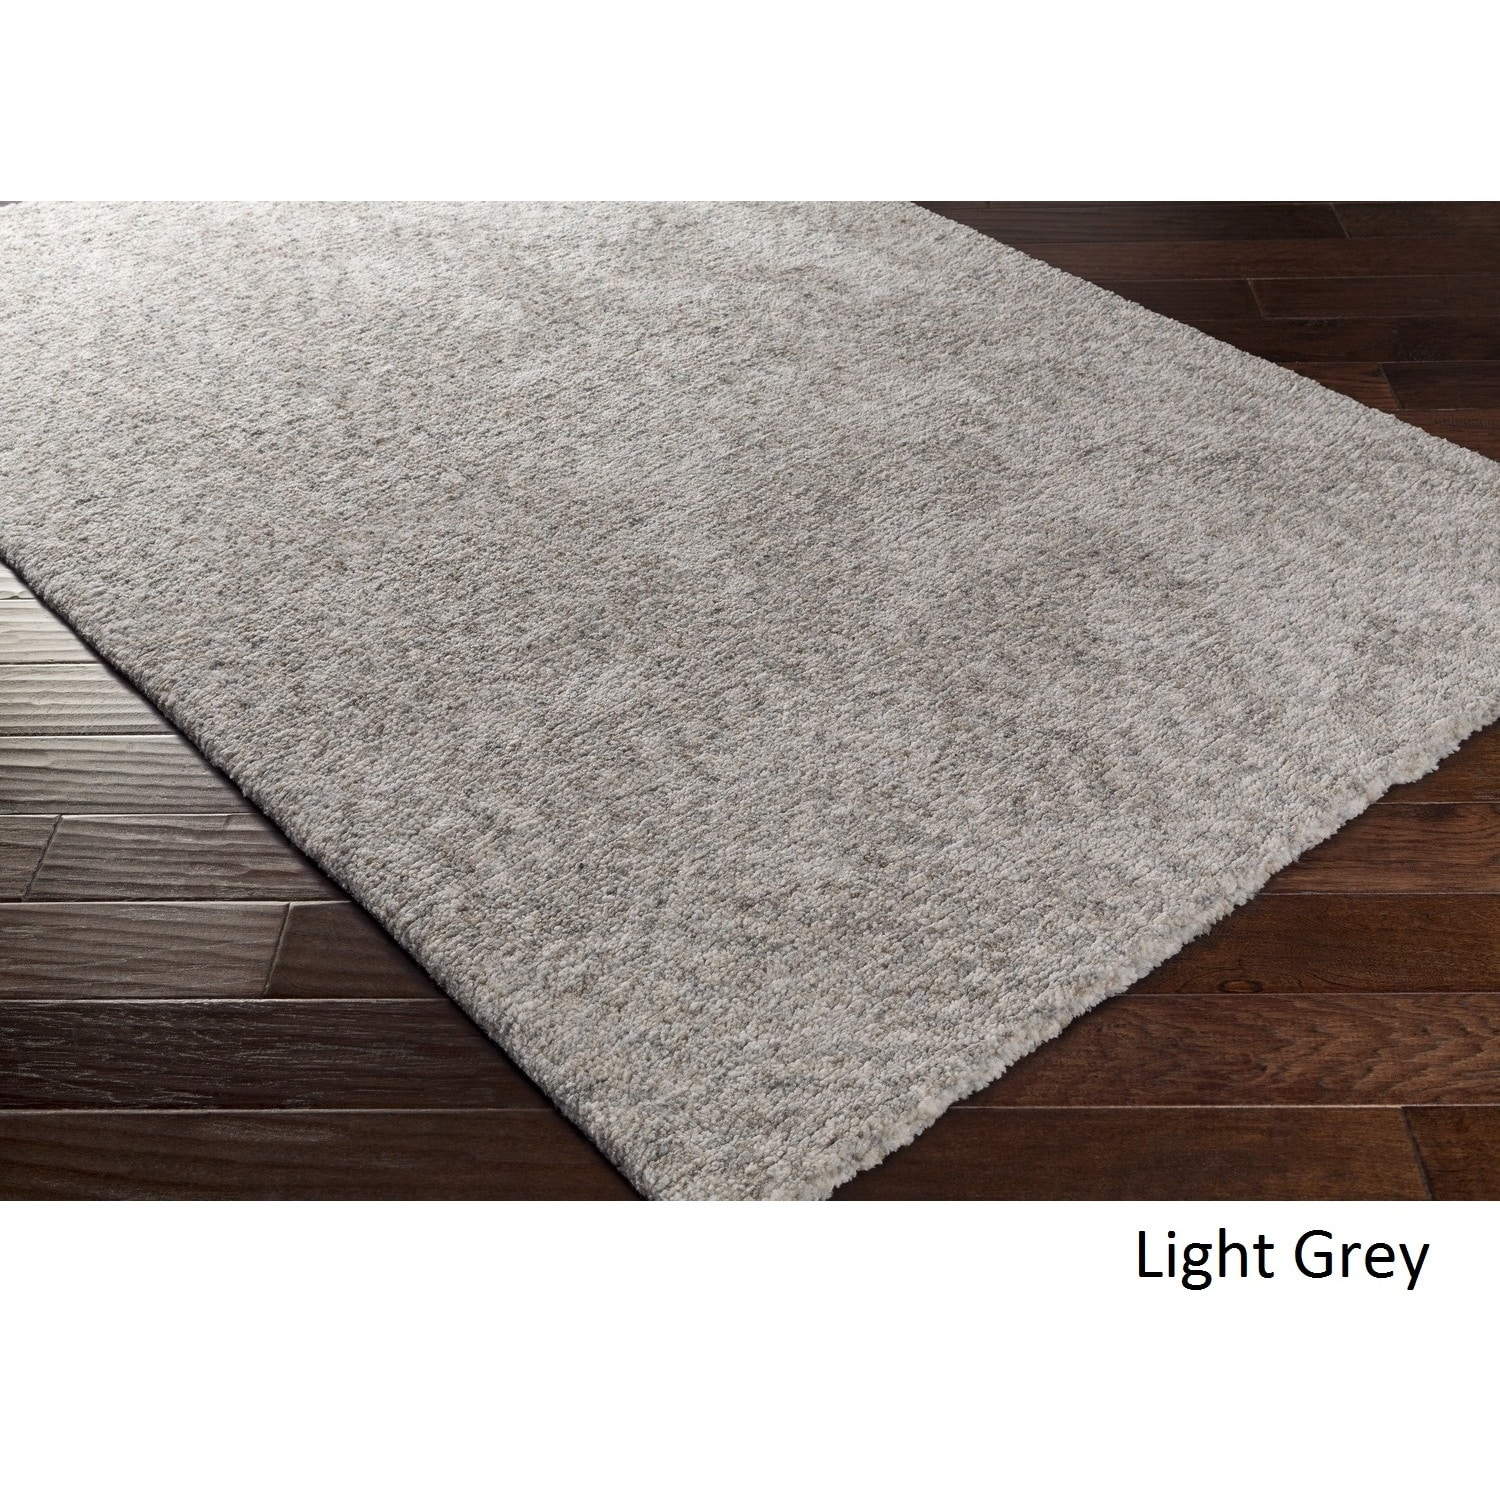 Table Tufted Madre Polyester Rug 8 X 11 Free Shipping Today